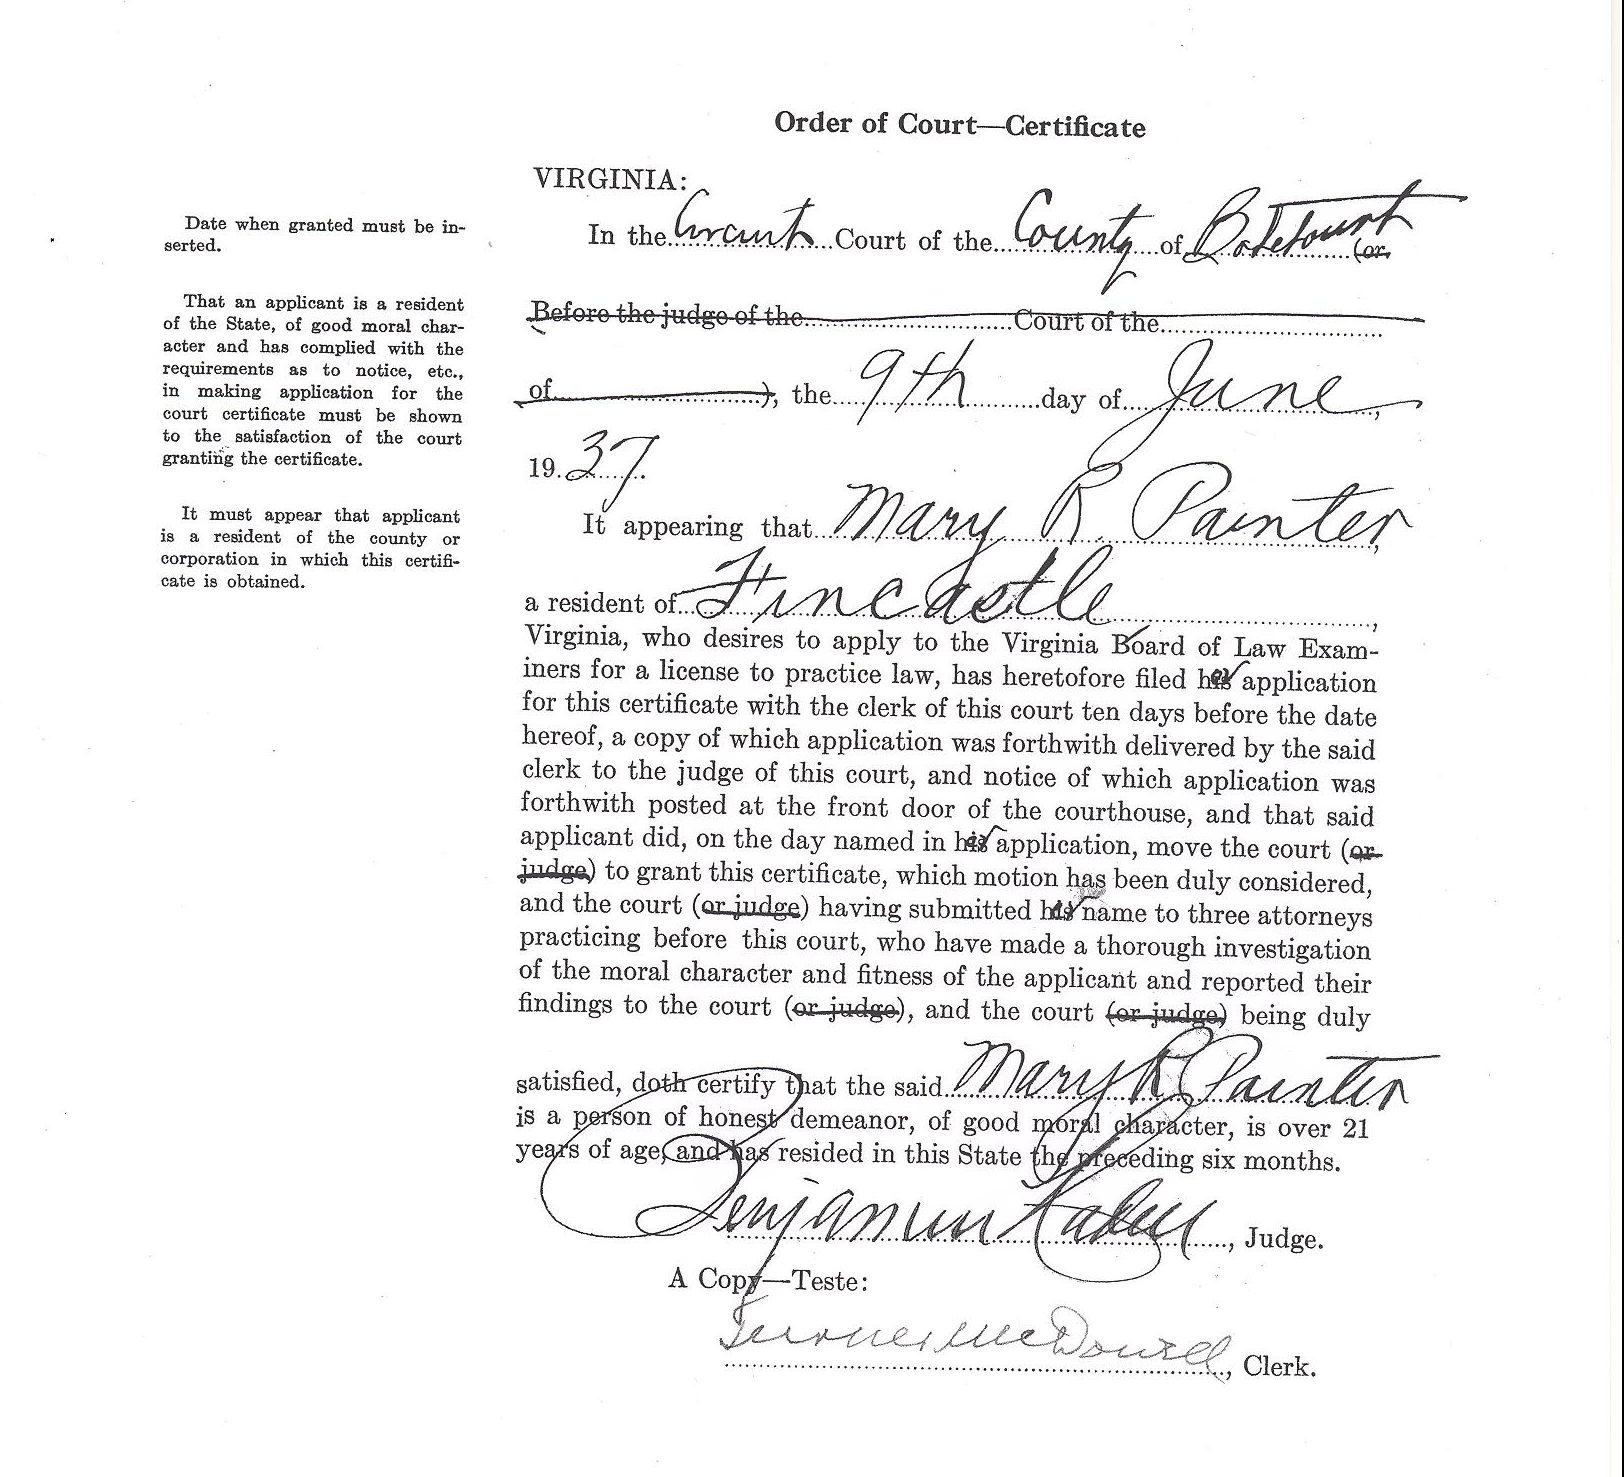 Court order - certificate authorizing Mary R. Painter to apply for a license to practice law.,